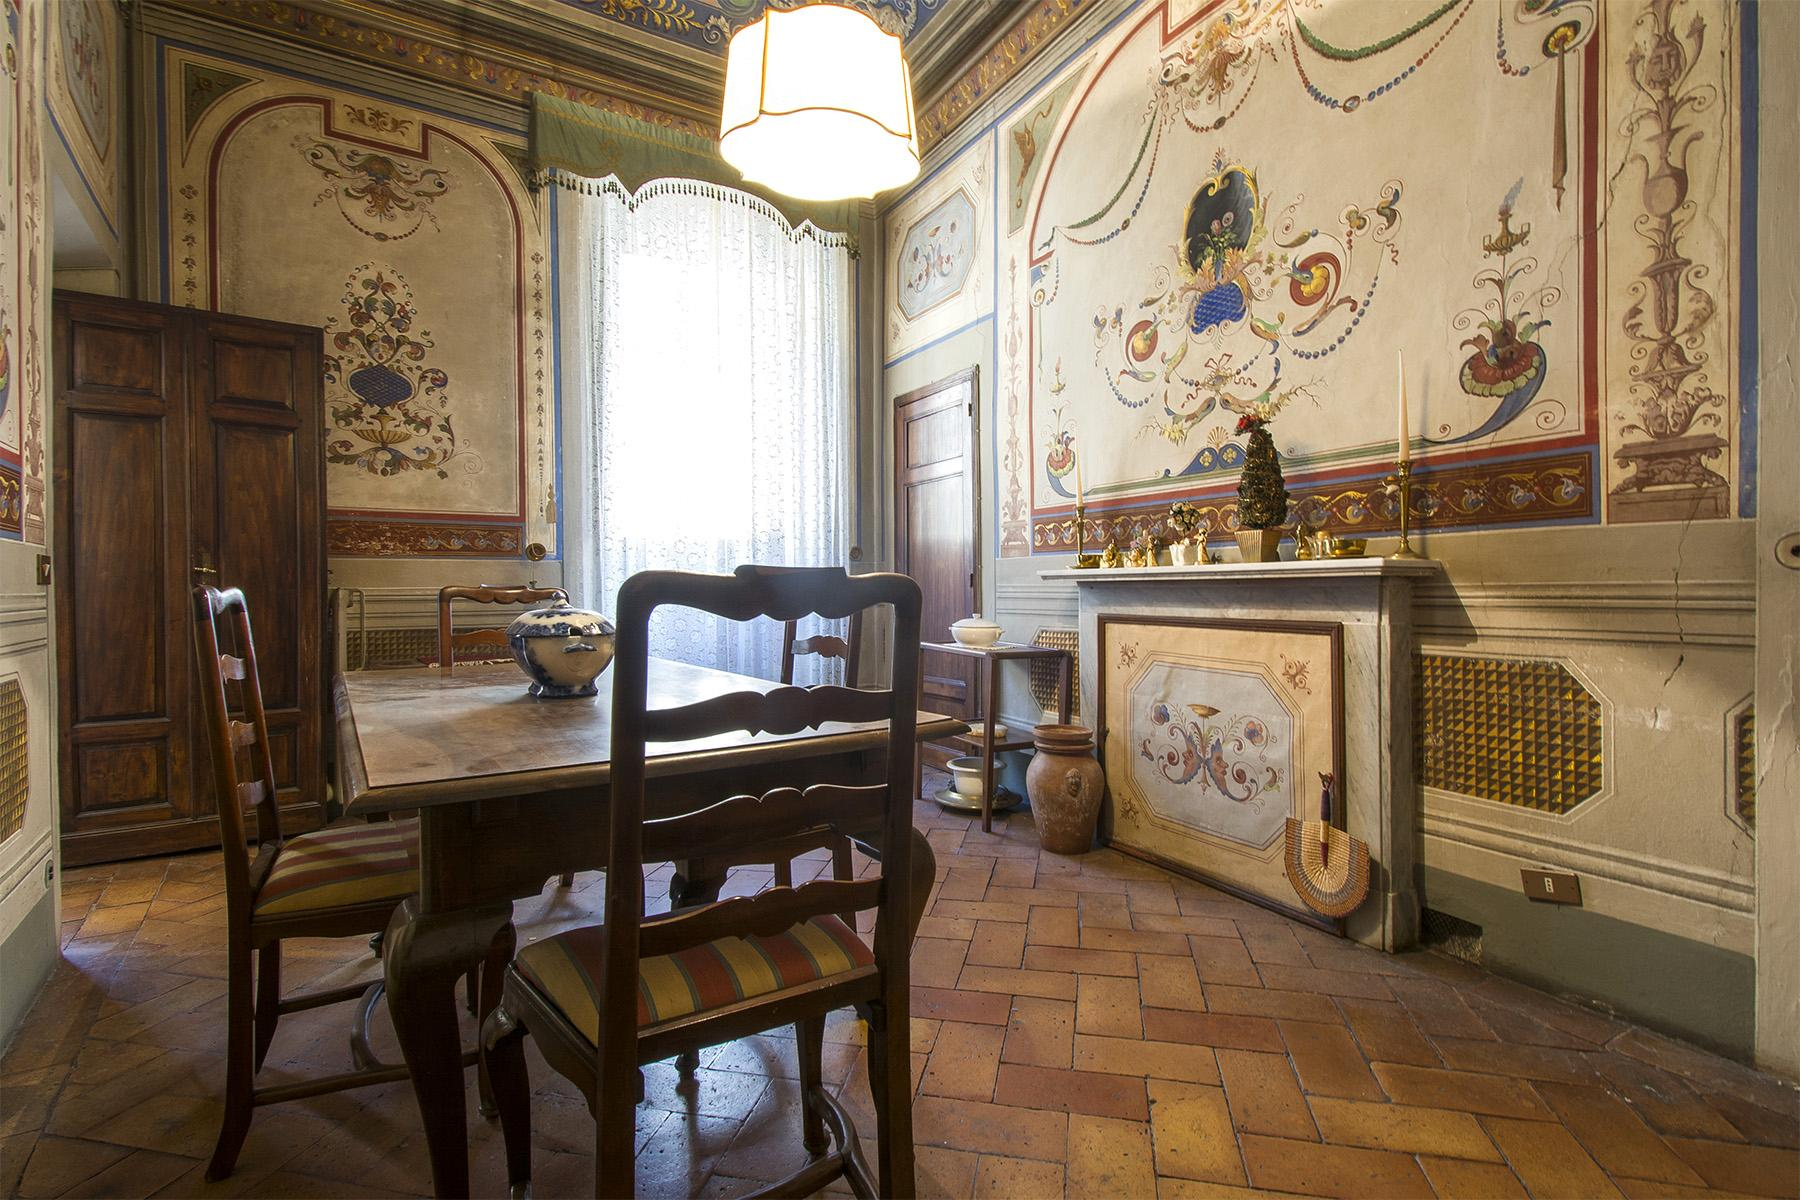 17th-century noble palace in the heart of Volterra - 10